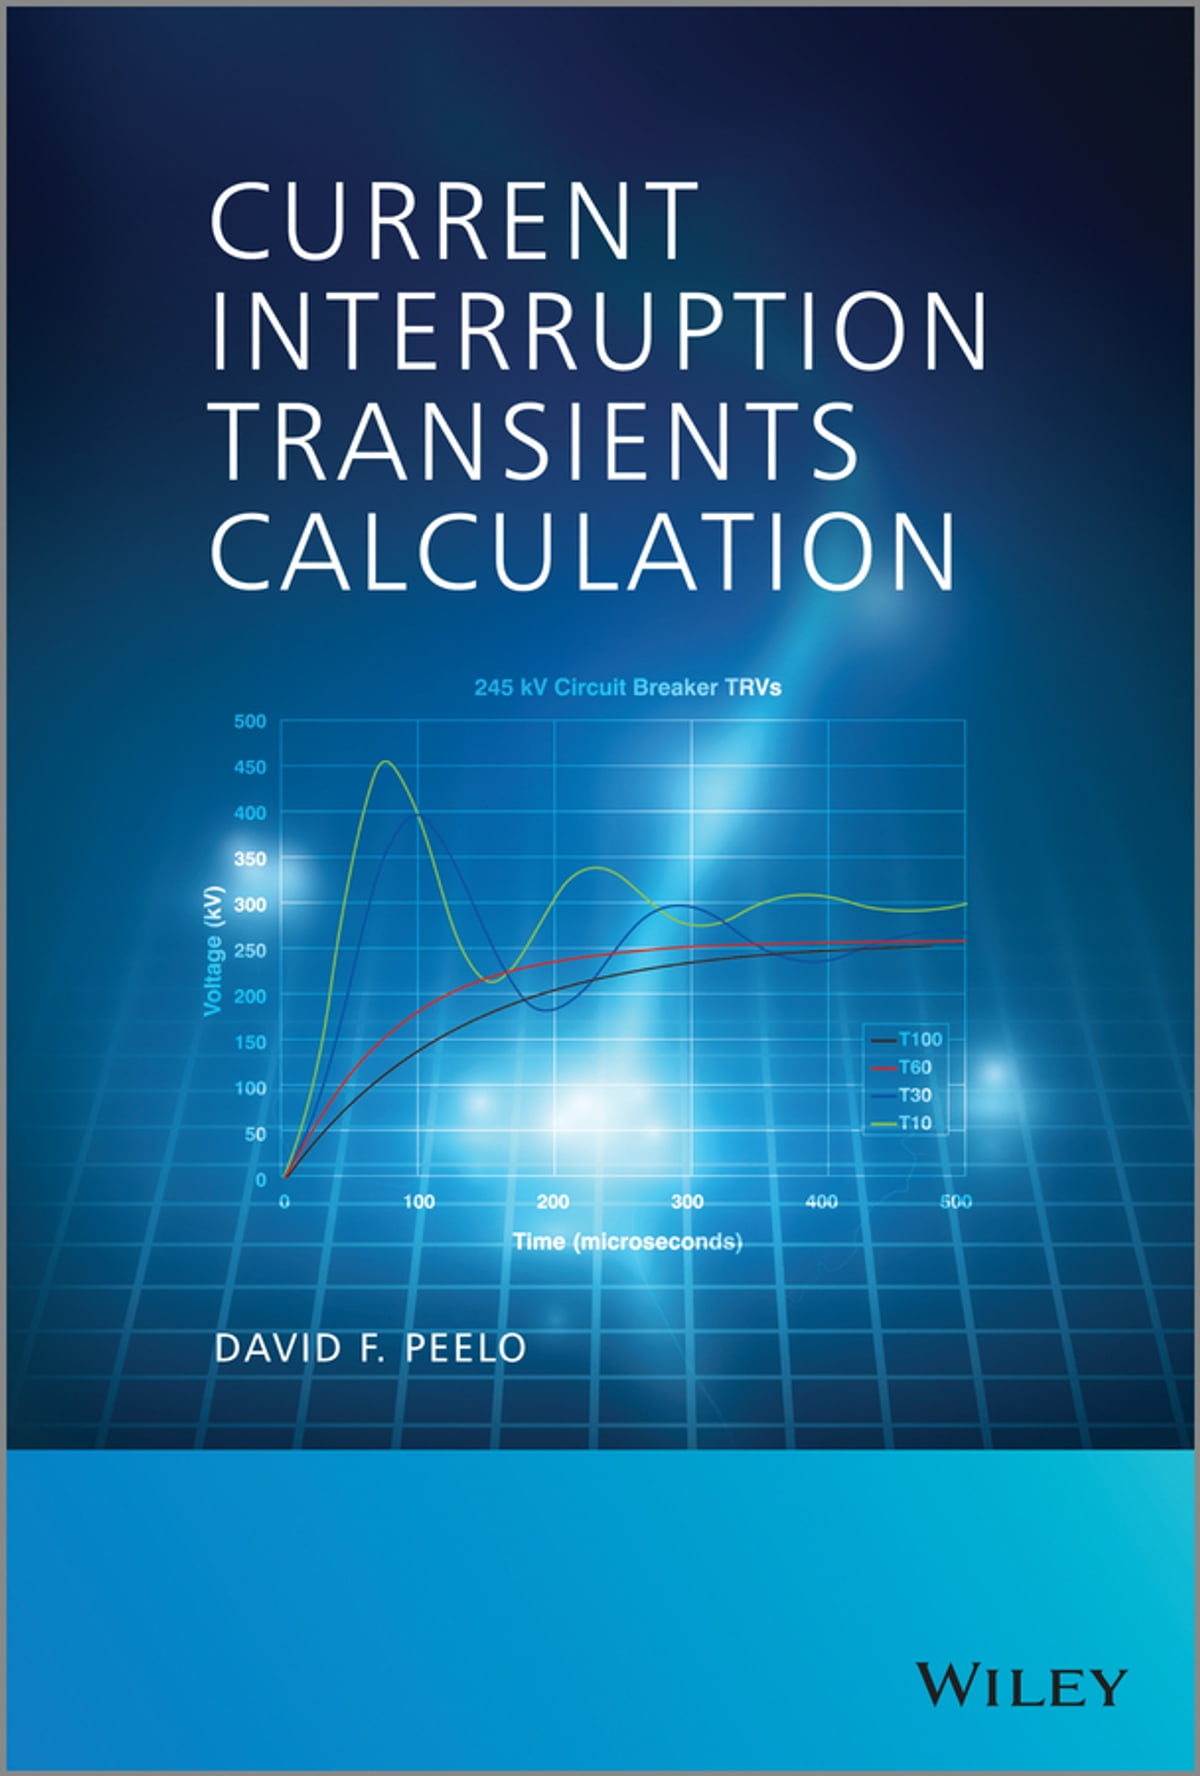 Current Interruption Transients Calculation Ebook By David F Peelo Transient Recovery Voltage The Power Frequency Which 9781118707210 Rakuten Kobo